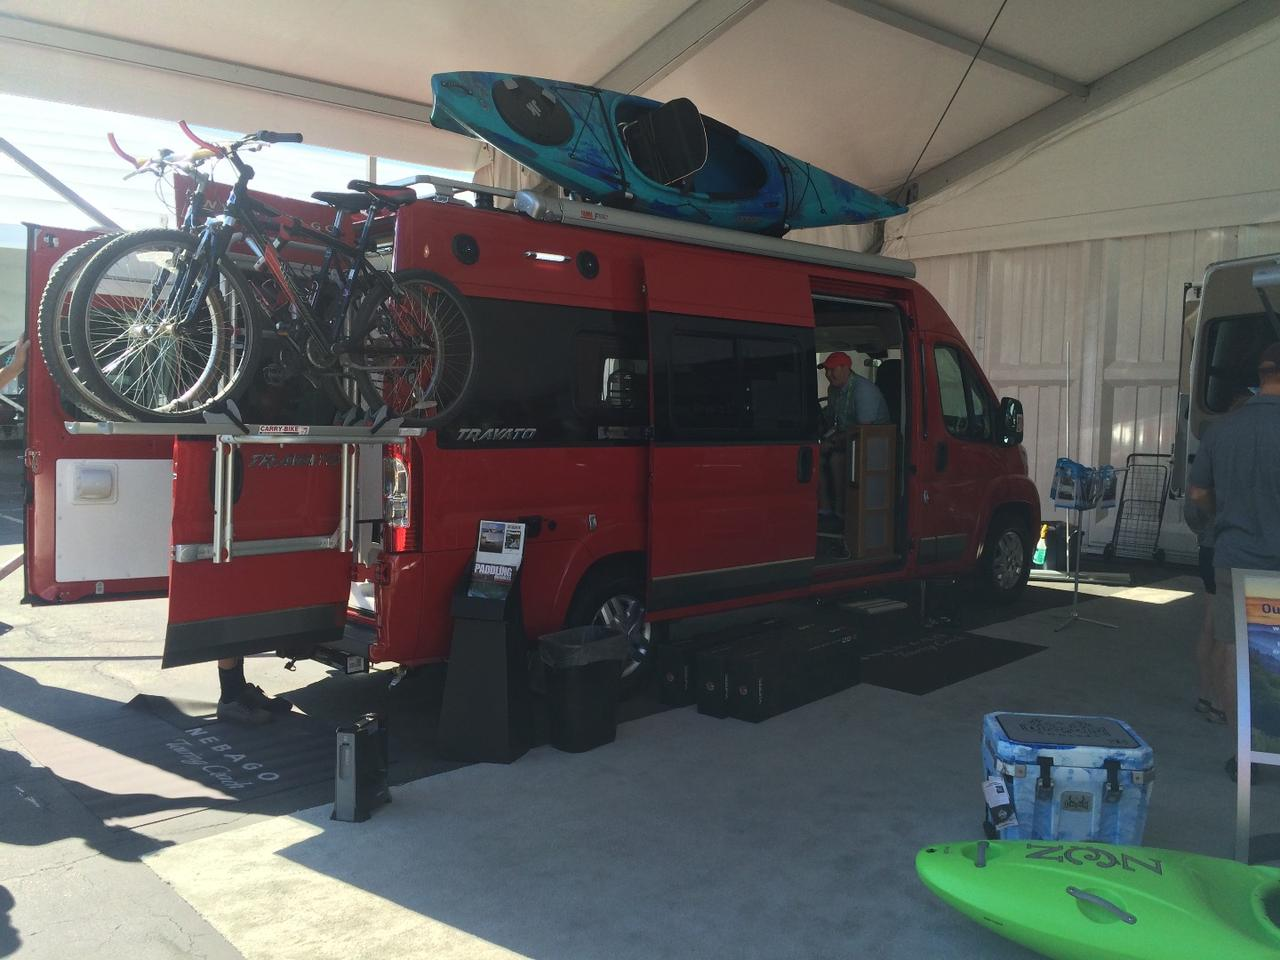 With the Travato, Winnebago is going for the mountain biking/ kayaking/climbing crowd